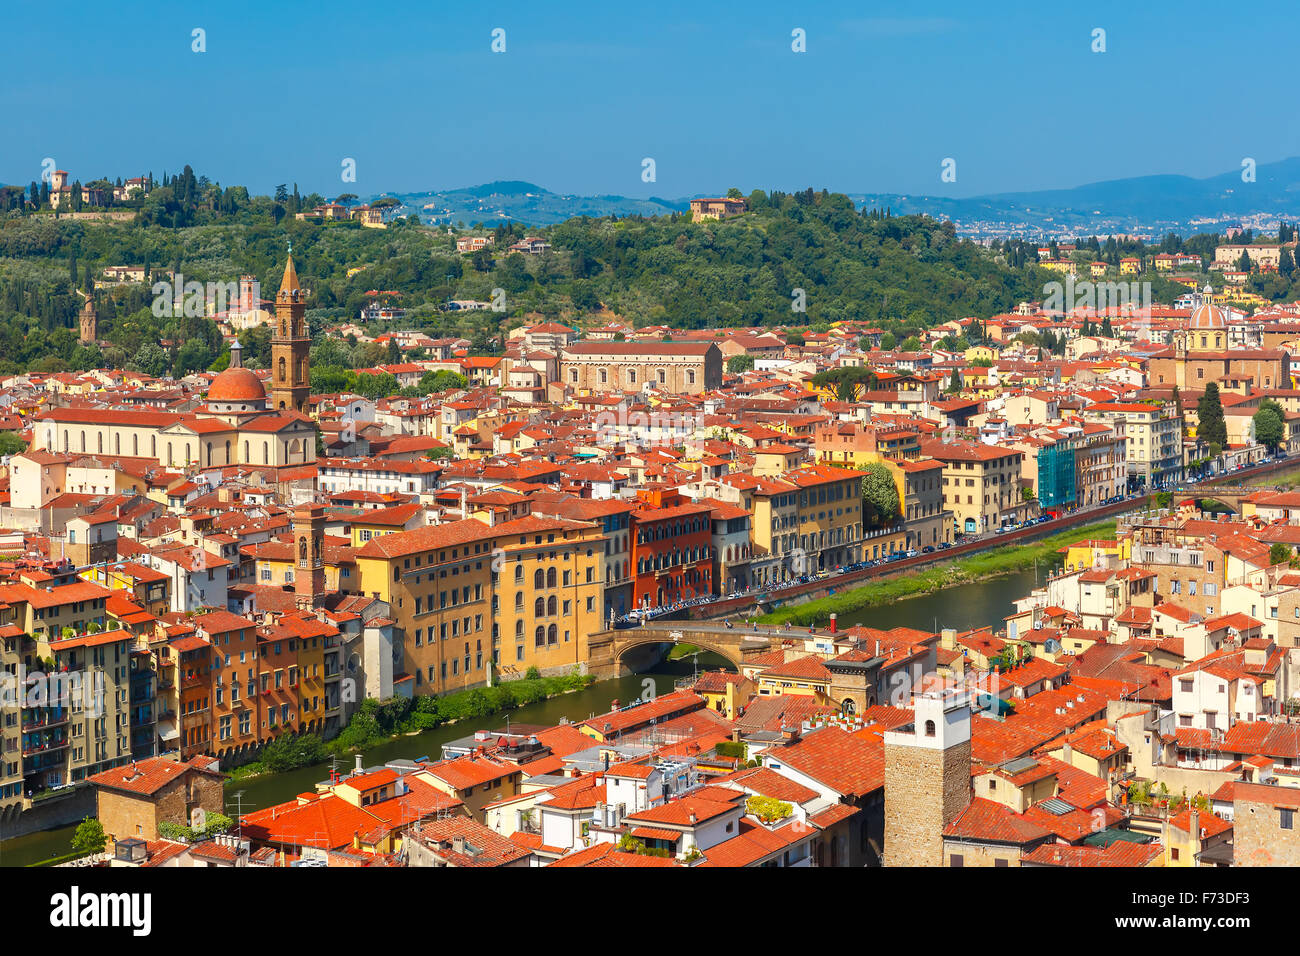 Oltrarno and Santo Spirito in Florence, Italy - Stock Image